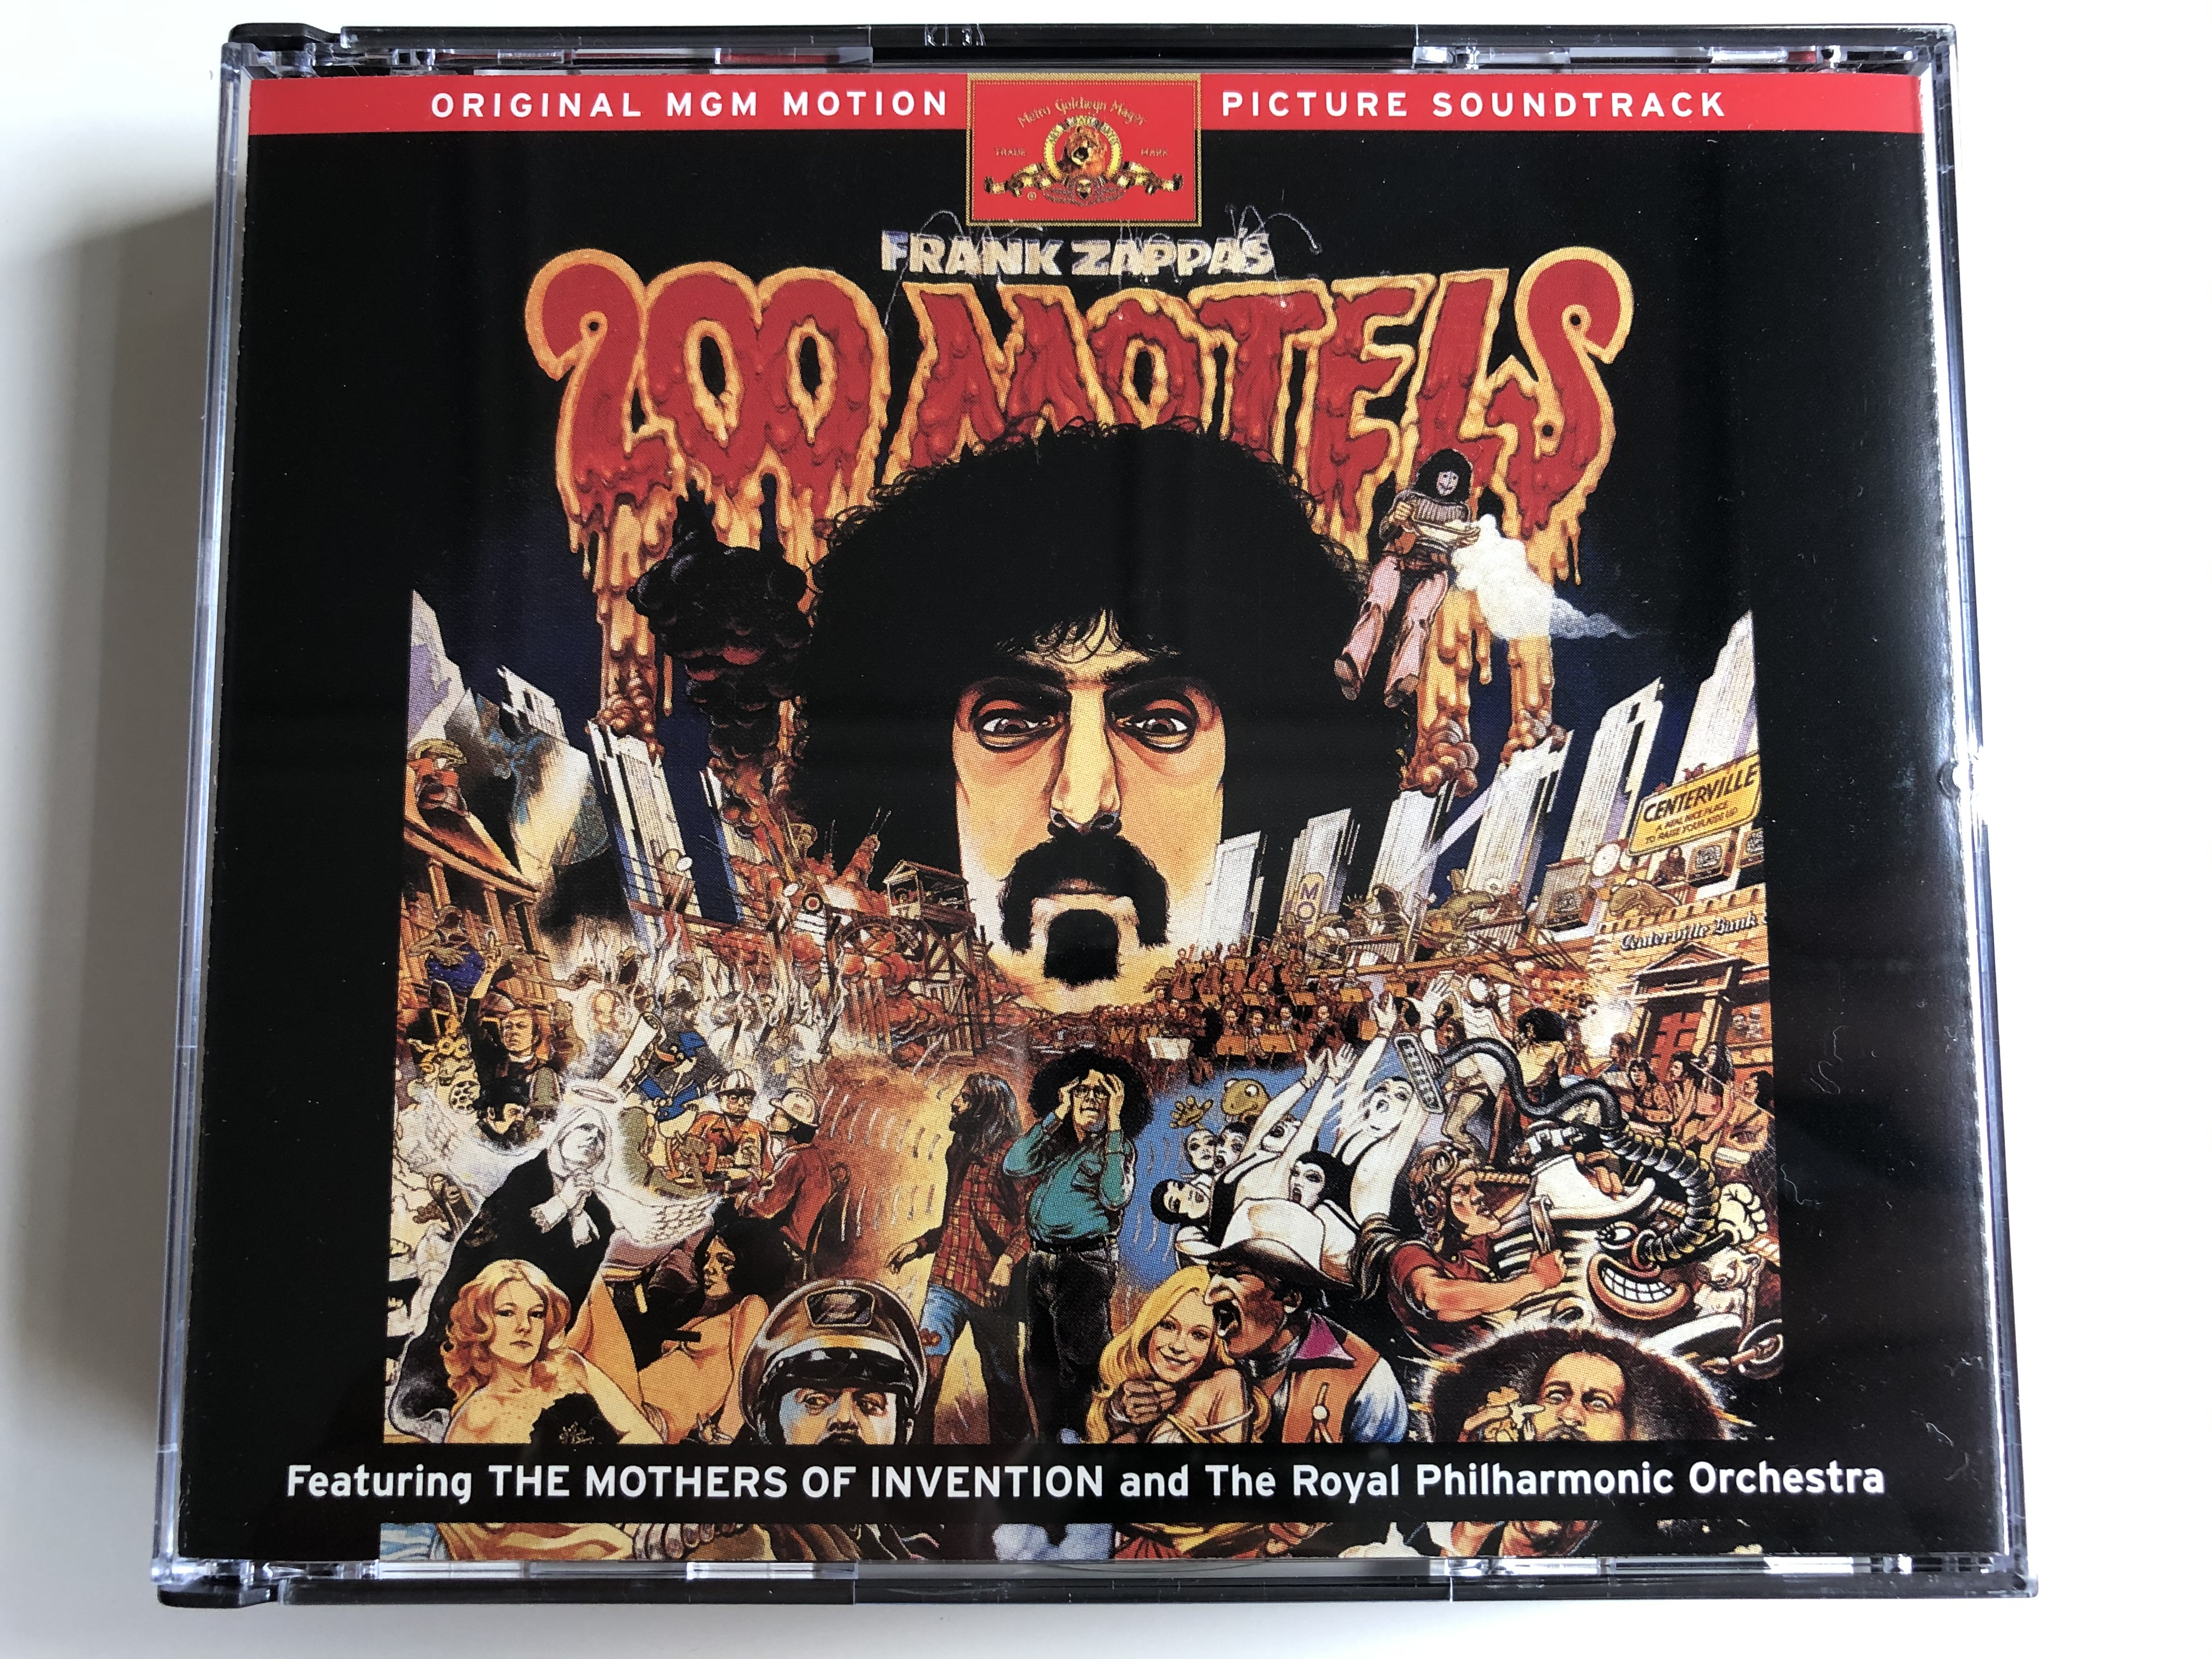 frank-zappa-200-motels-original-mgm-motion-picture-soundtrack-featuring-the-mothers-of-invention-and-the-royal-philharmonic-orchestra-rykodisc-2x-audio-cd-1997-rcd-1051314-1-.jpg